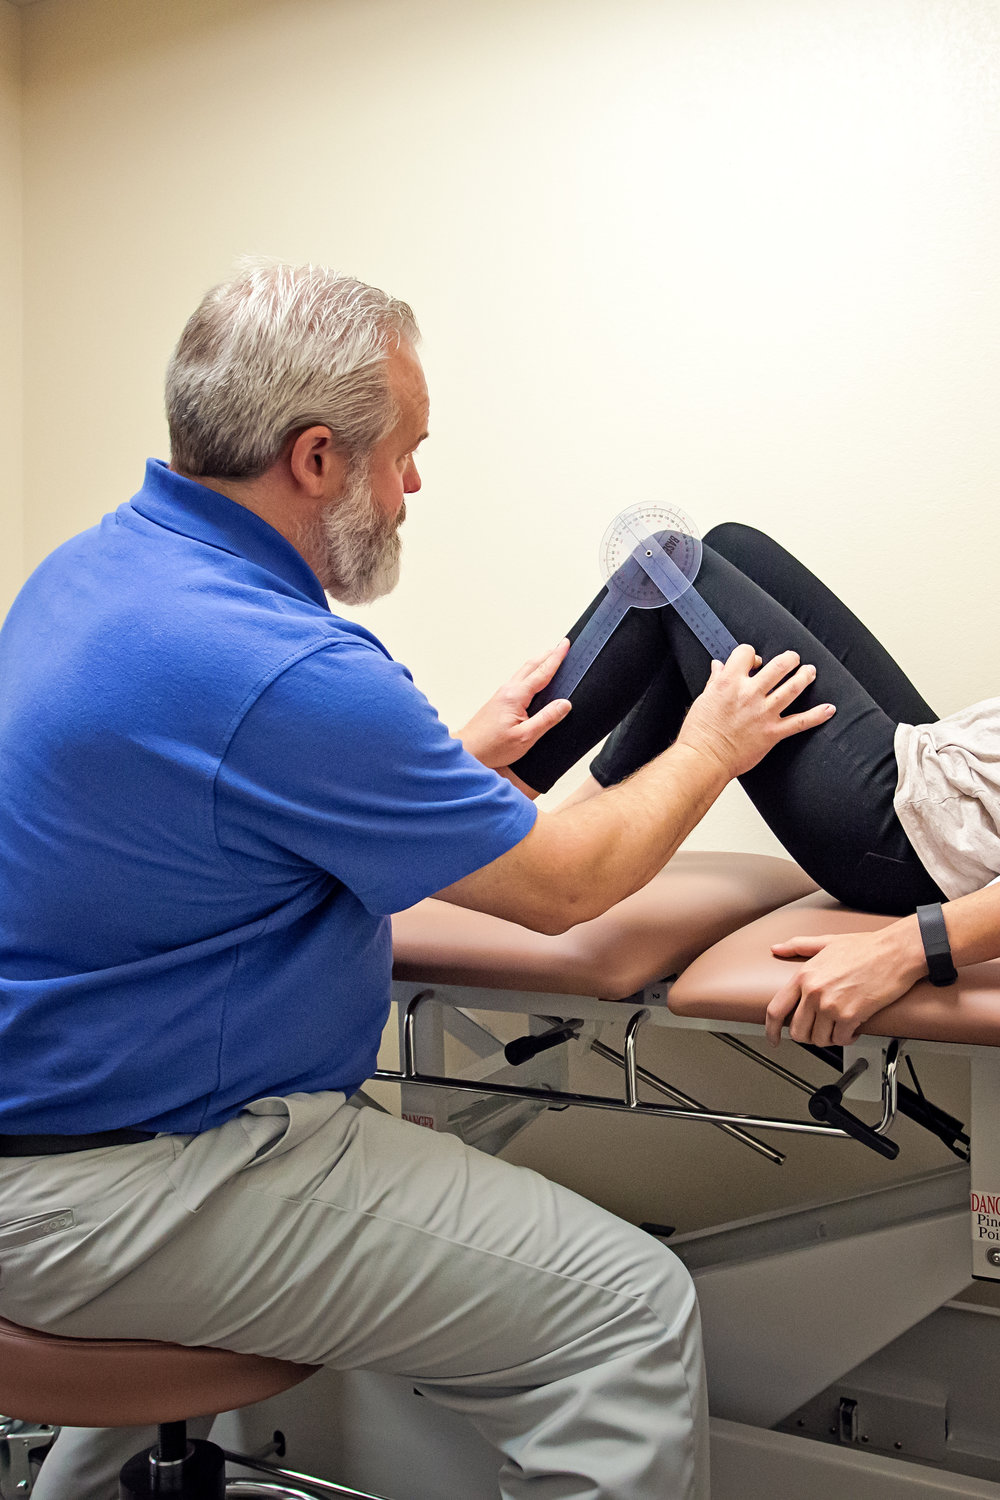 Physical Therapy Services are provided in out Salt Lake City Clinic